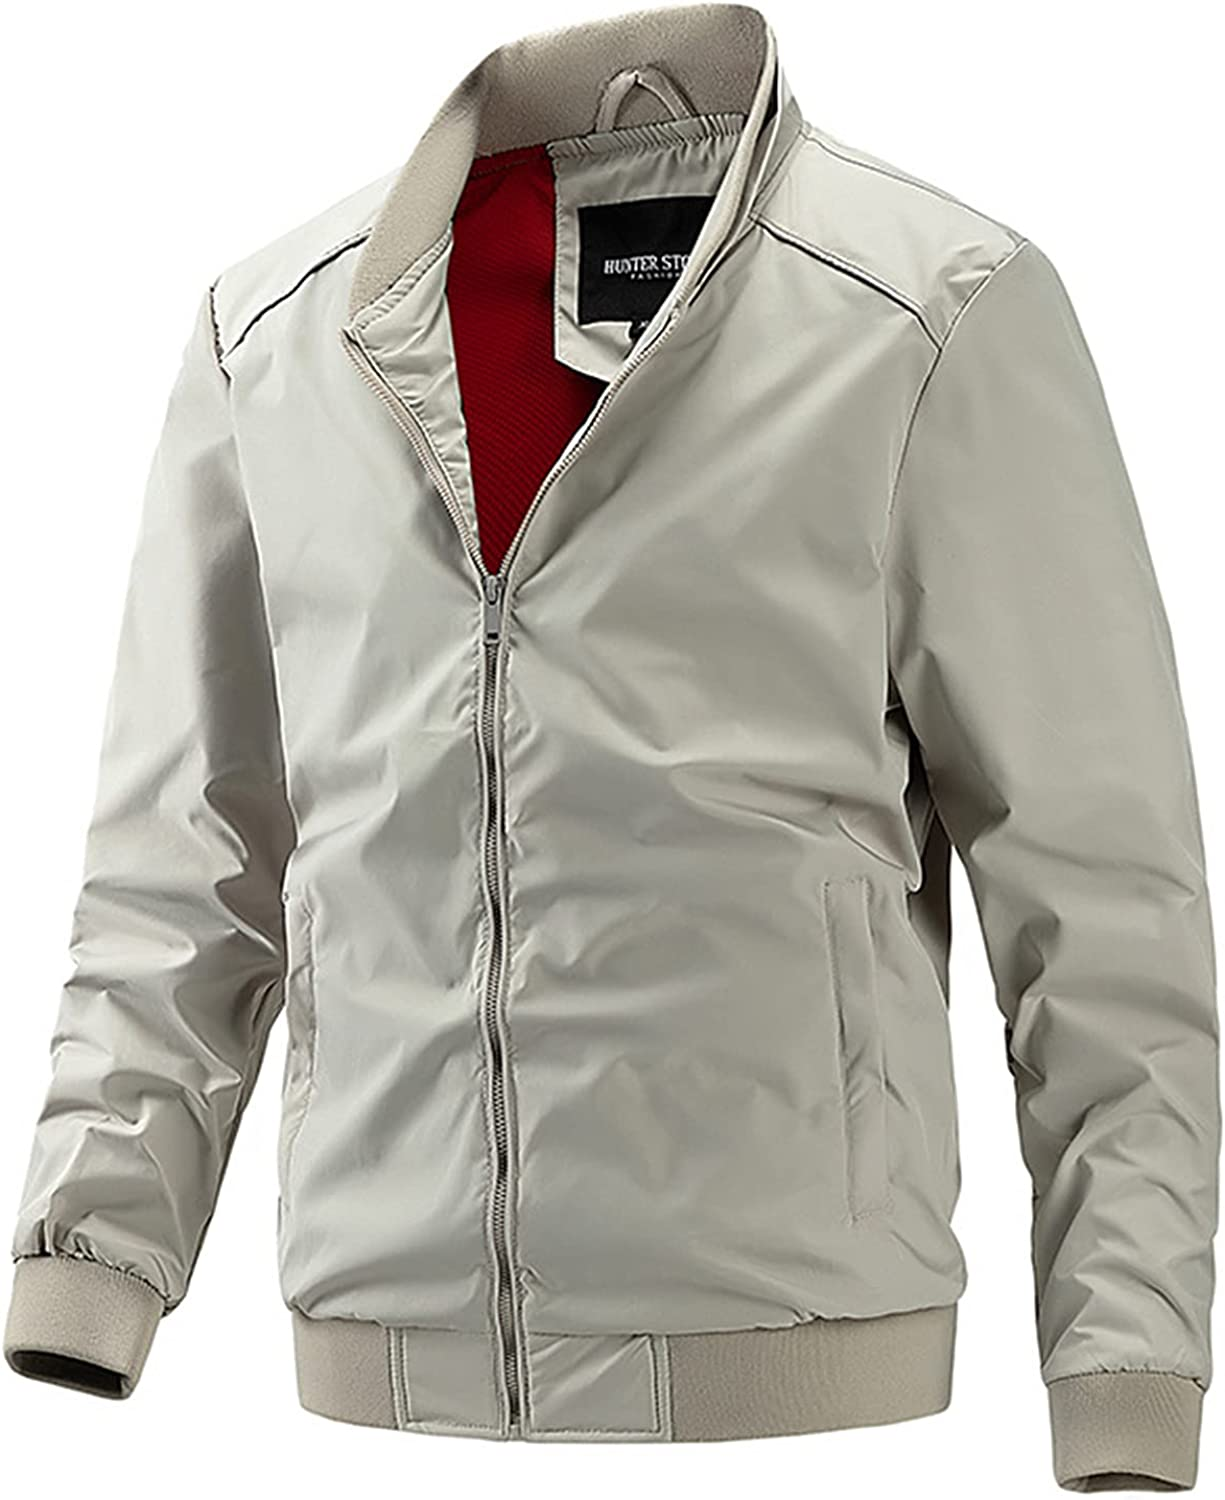 CNBPLS Men's Lightweight Jacket,Casual Sportswear Bomber Coat,Comfortable and Breathable Outwear